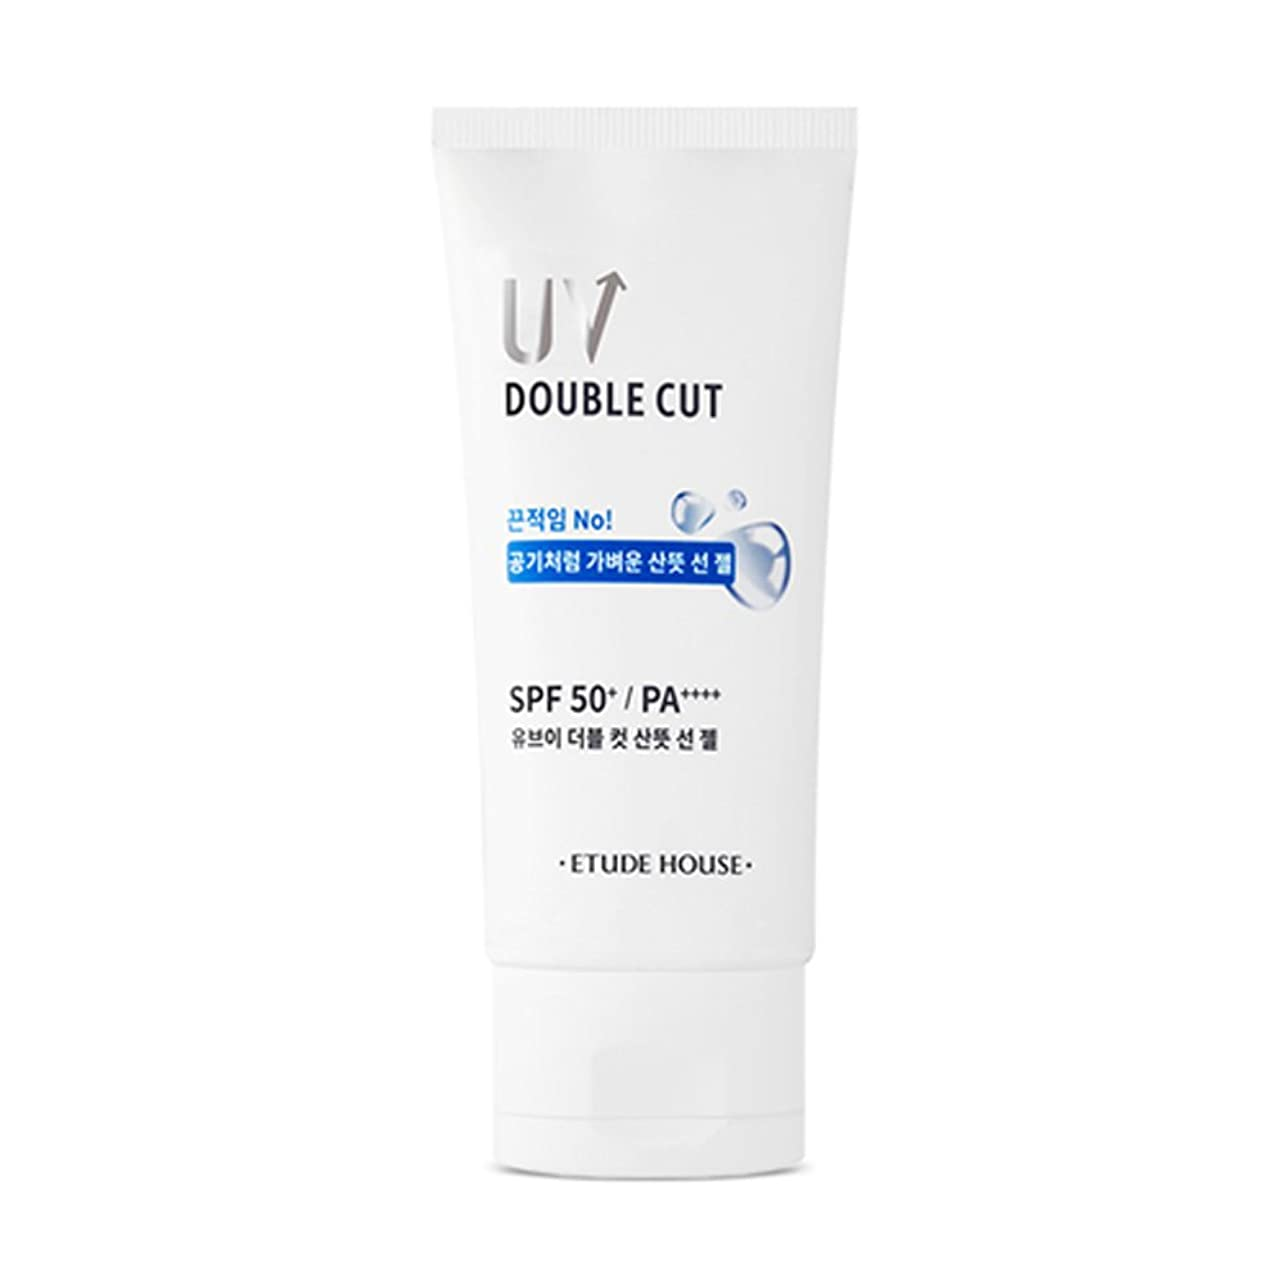 カート褒賞マトンETUDE HOUSE エチュードハウス UV DOUBLE CUT FRESH SUN GEL SPF 50+ PA+++ 50ml/1.69 fl.oz